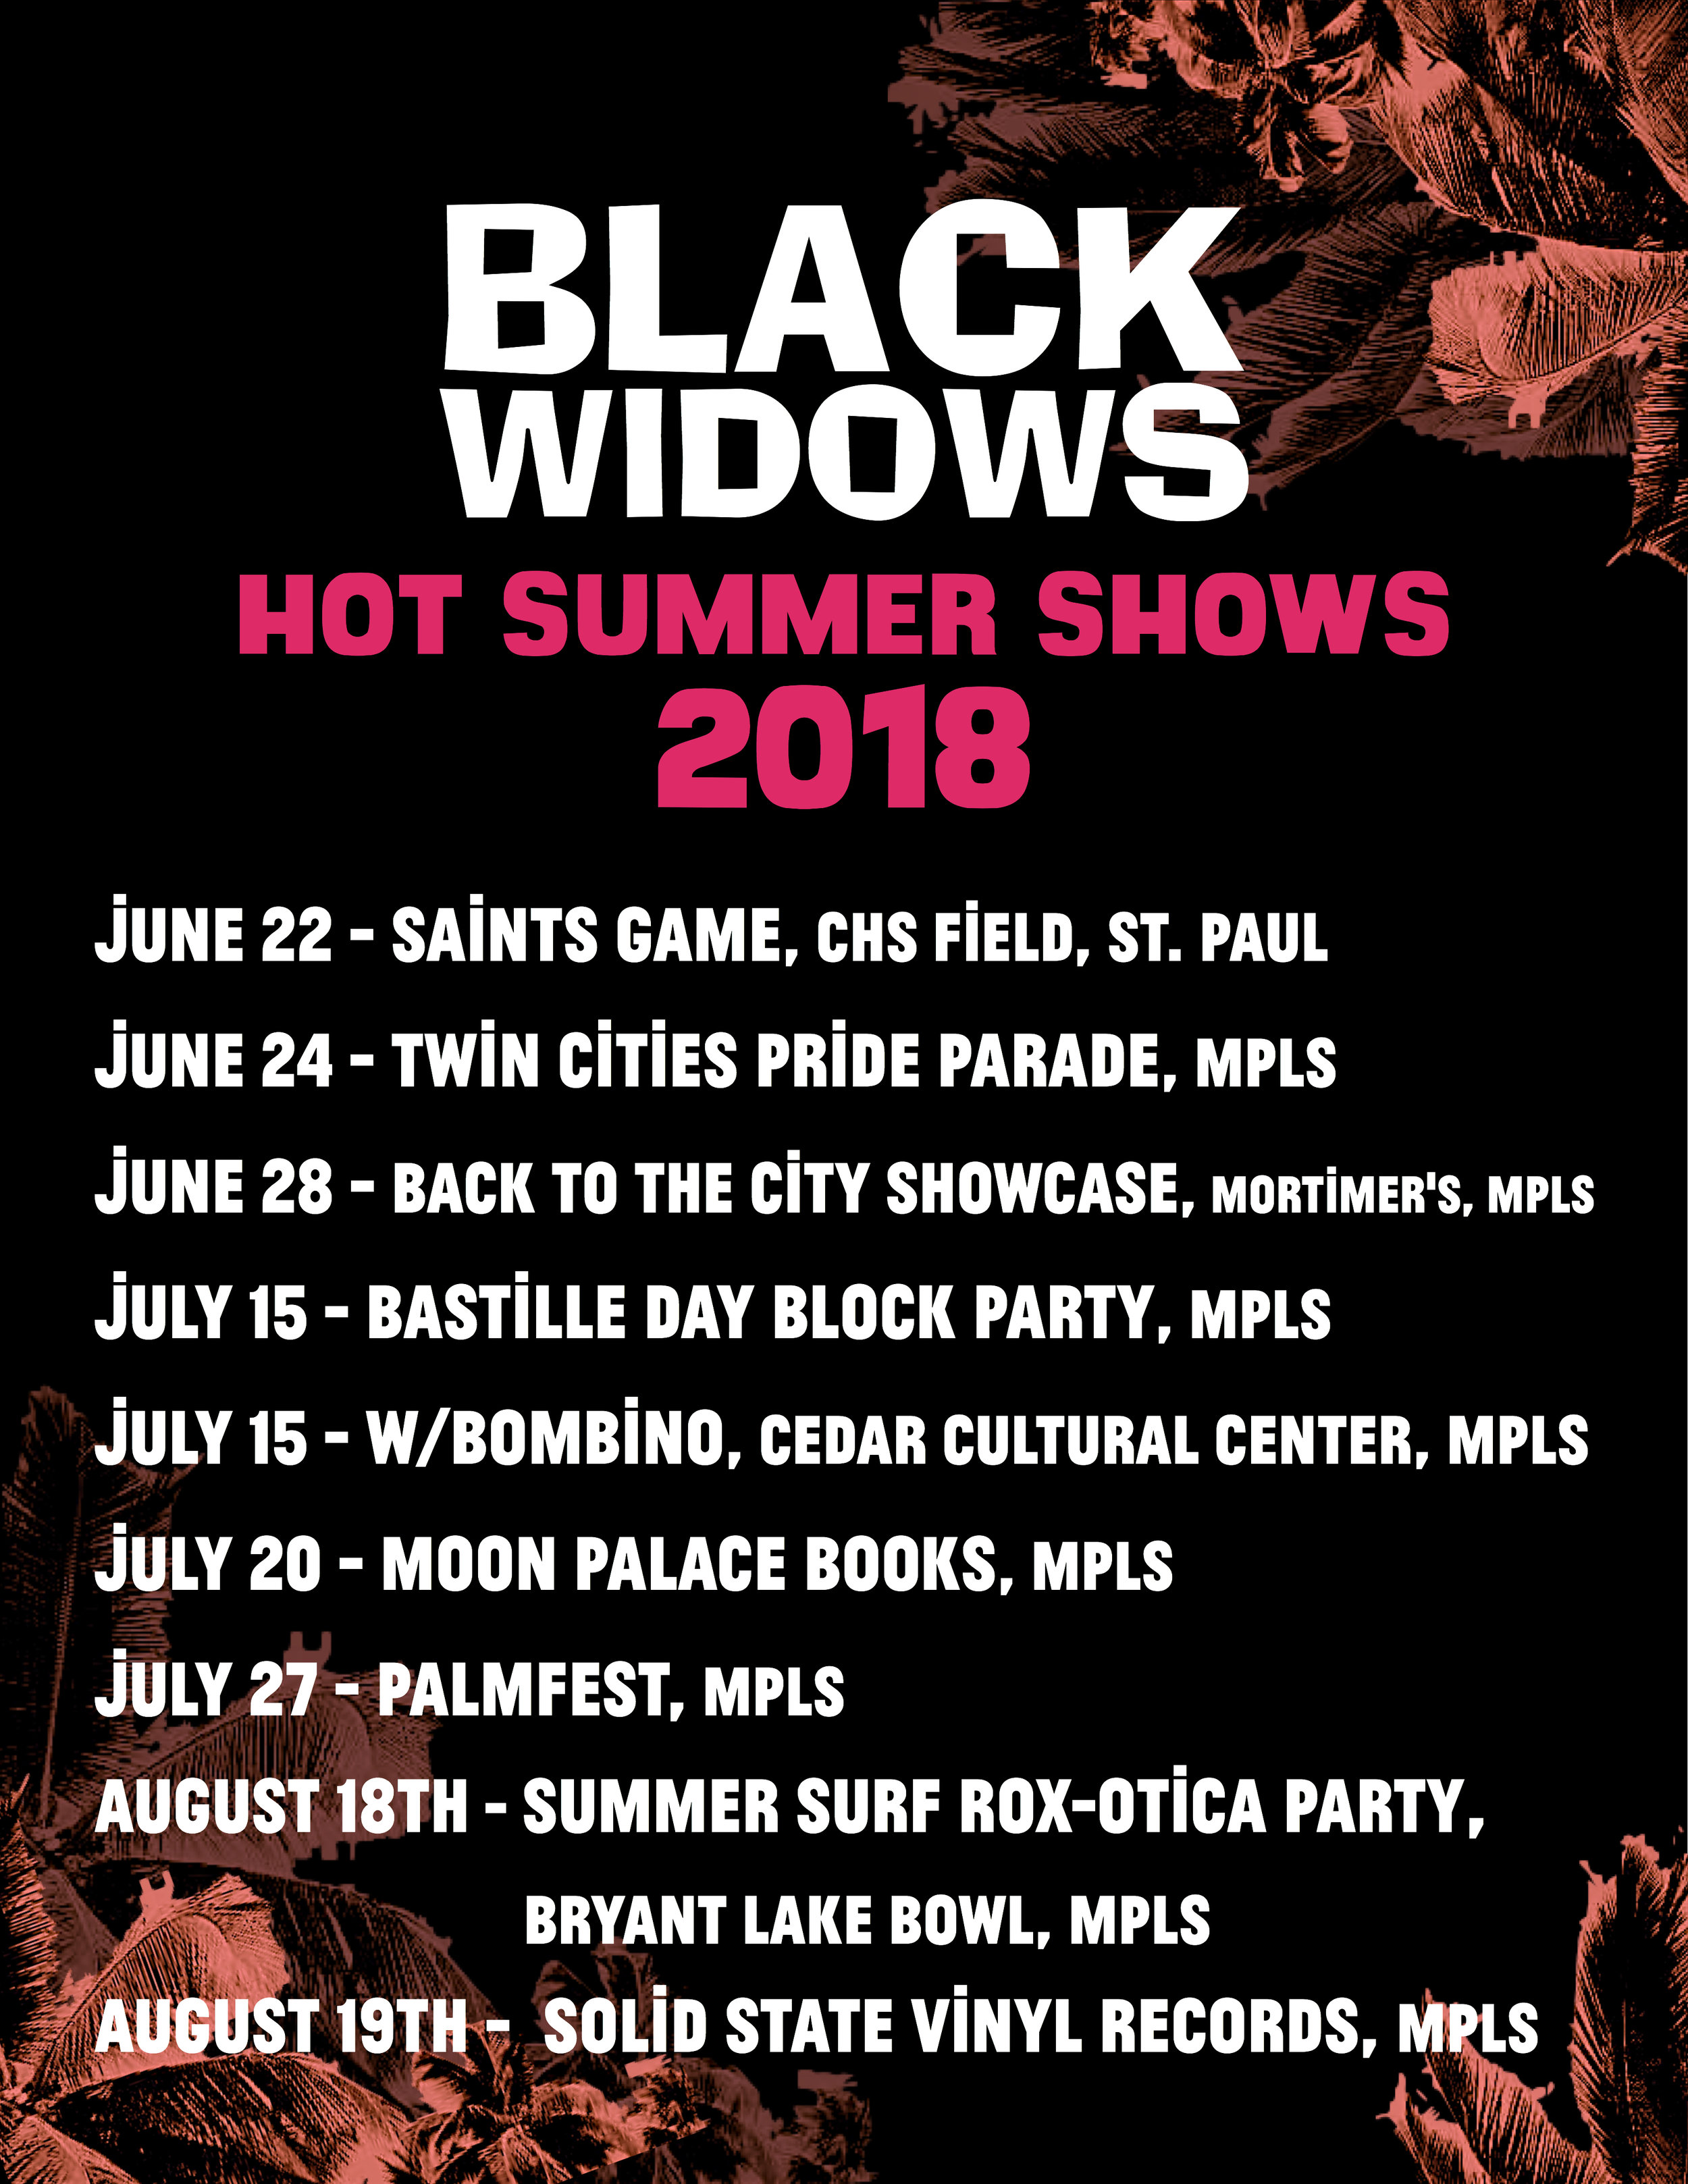 BW - summer shows 2018.jpg